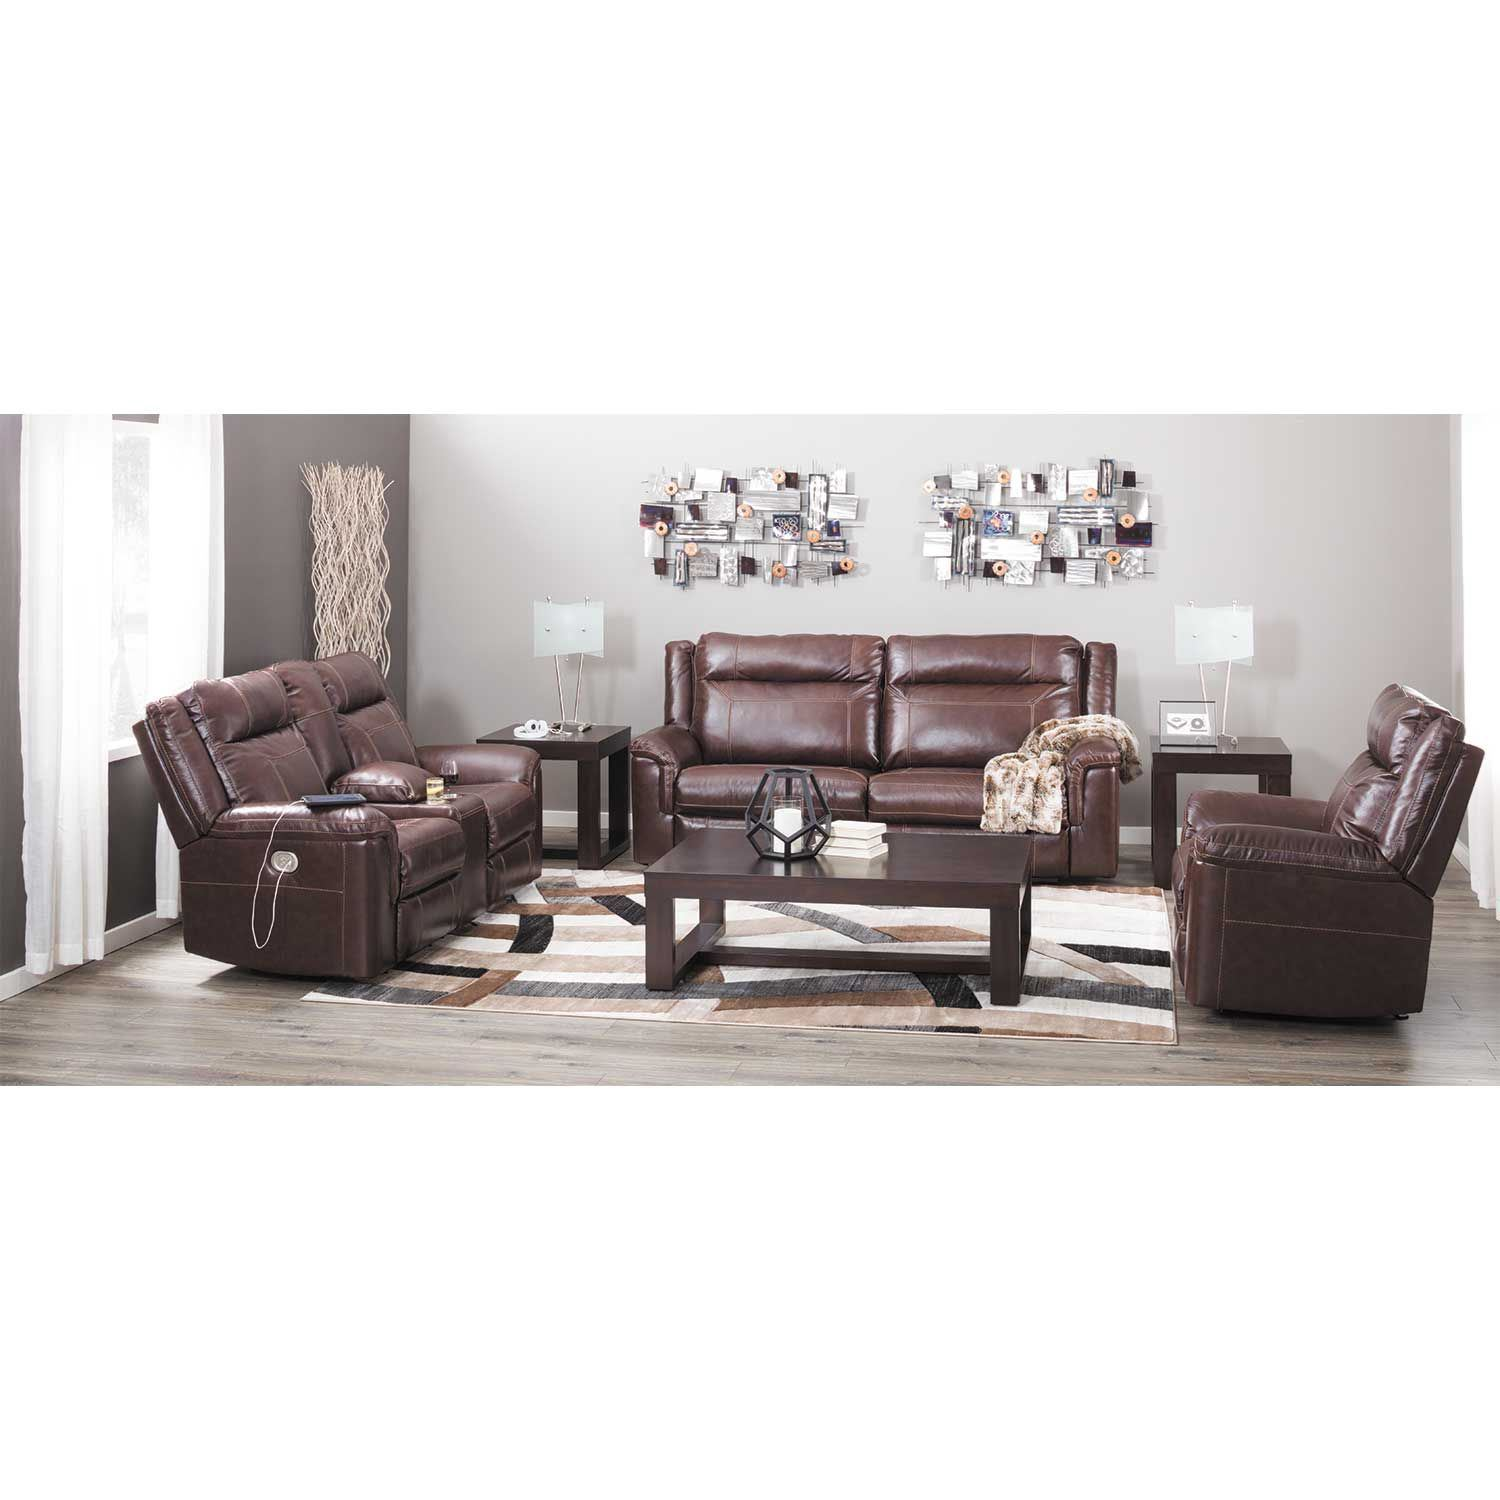 Marvelous Wyline Leather Power Recliner With Adjustable Headrest Pdpeps Interior Chair Design Pdpepsorg